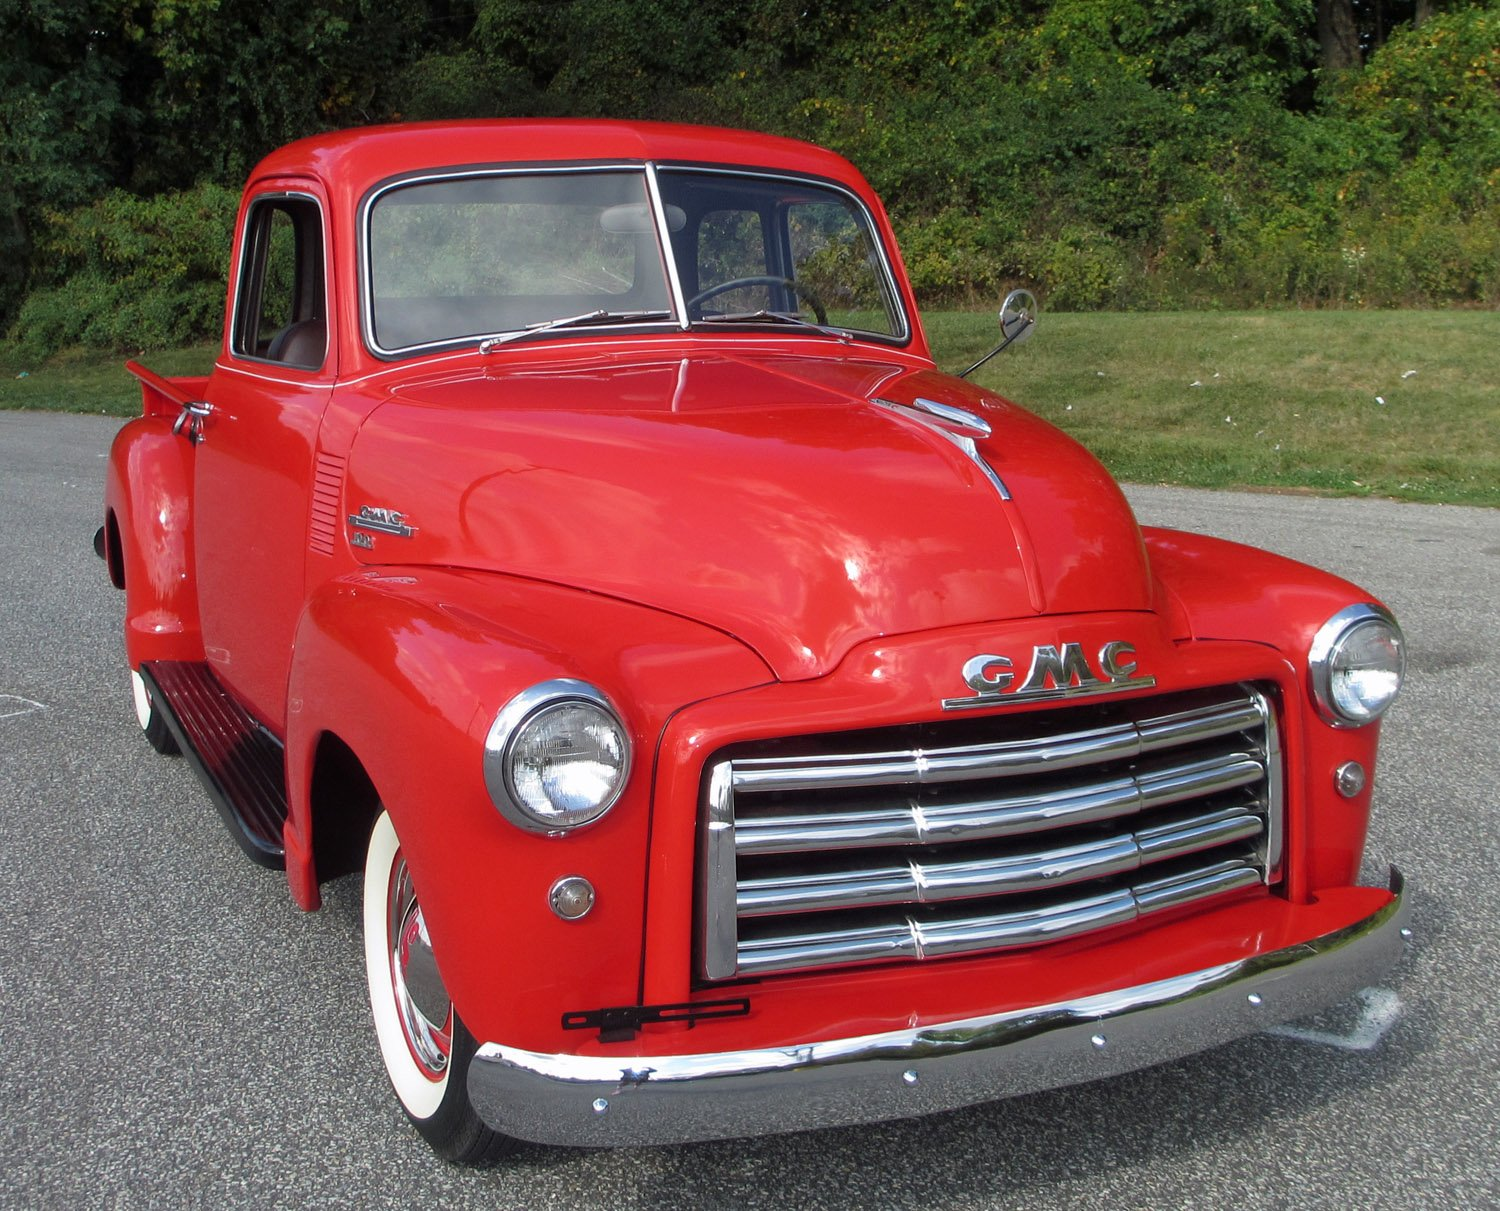 1949 GMC 1/2 Ton Pickup